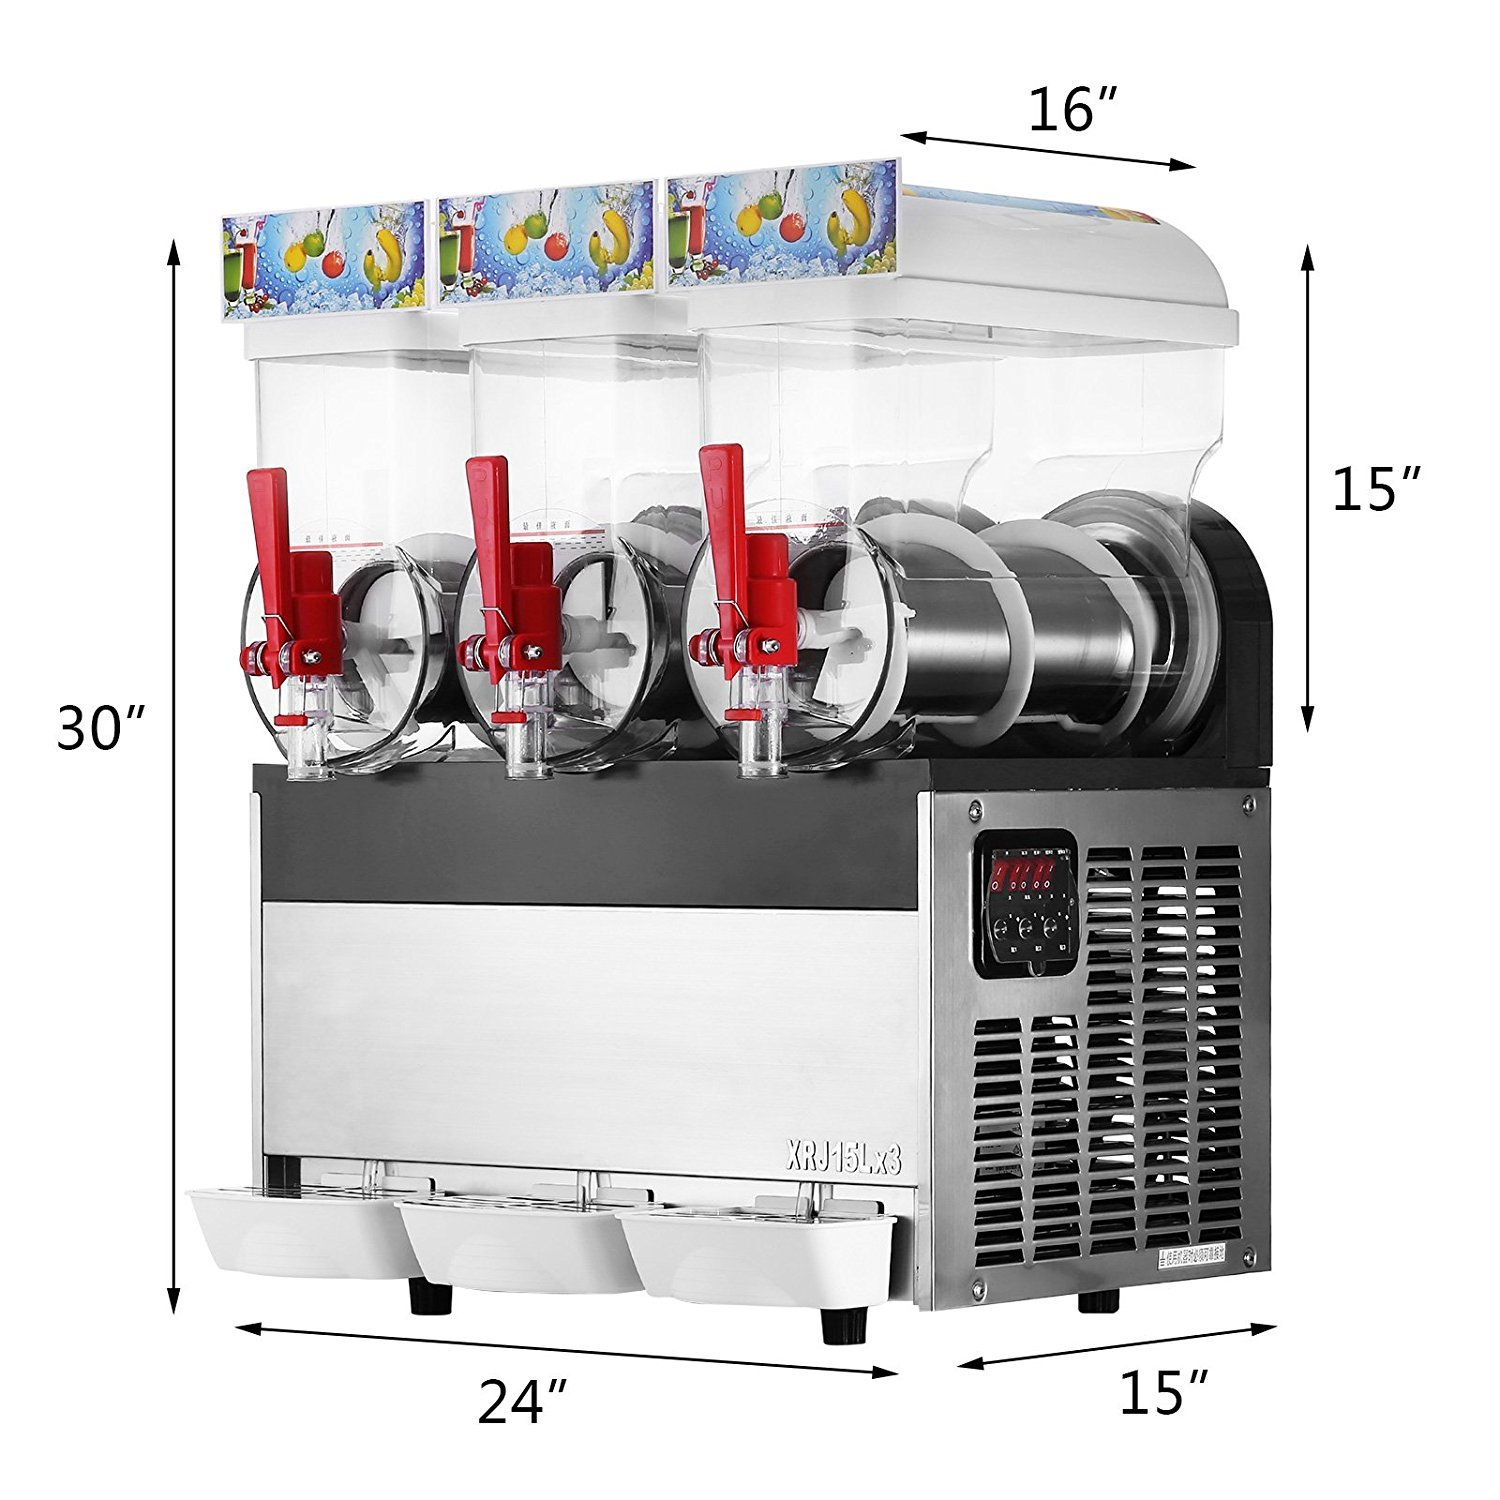 Happybuy 110V Commercial Slushy Machine 500W Stainless Steel Margarita Smoothie Frozen Drink Maker Suitable Perfect for Ice Juice Tea Coffee Making 15L x 3 Tank Sliver by Happybuy (Image #2)